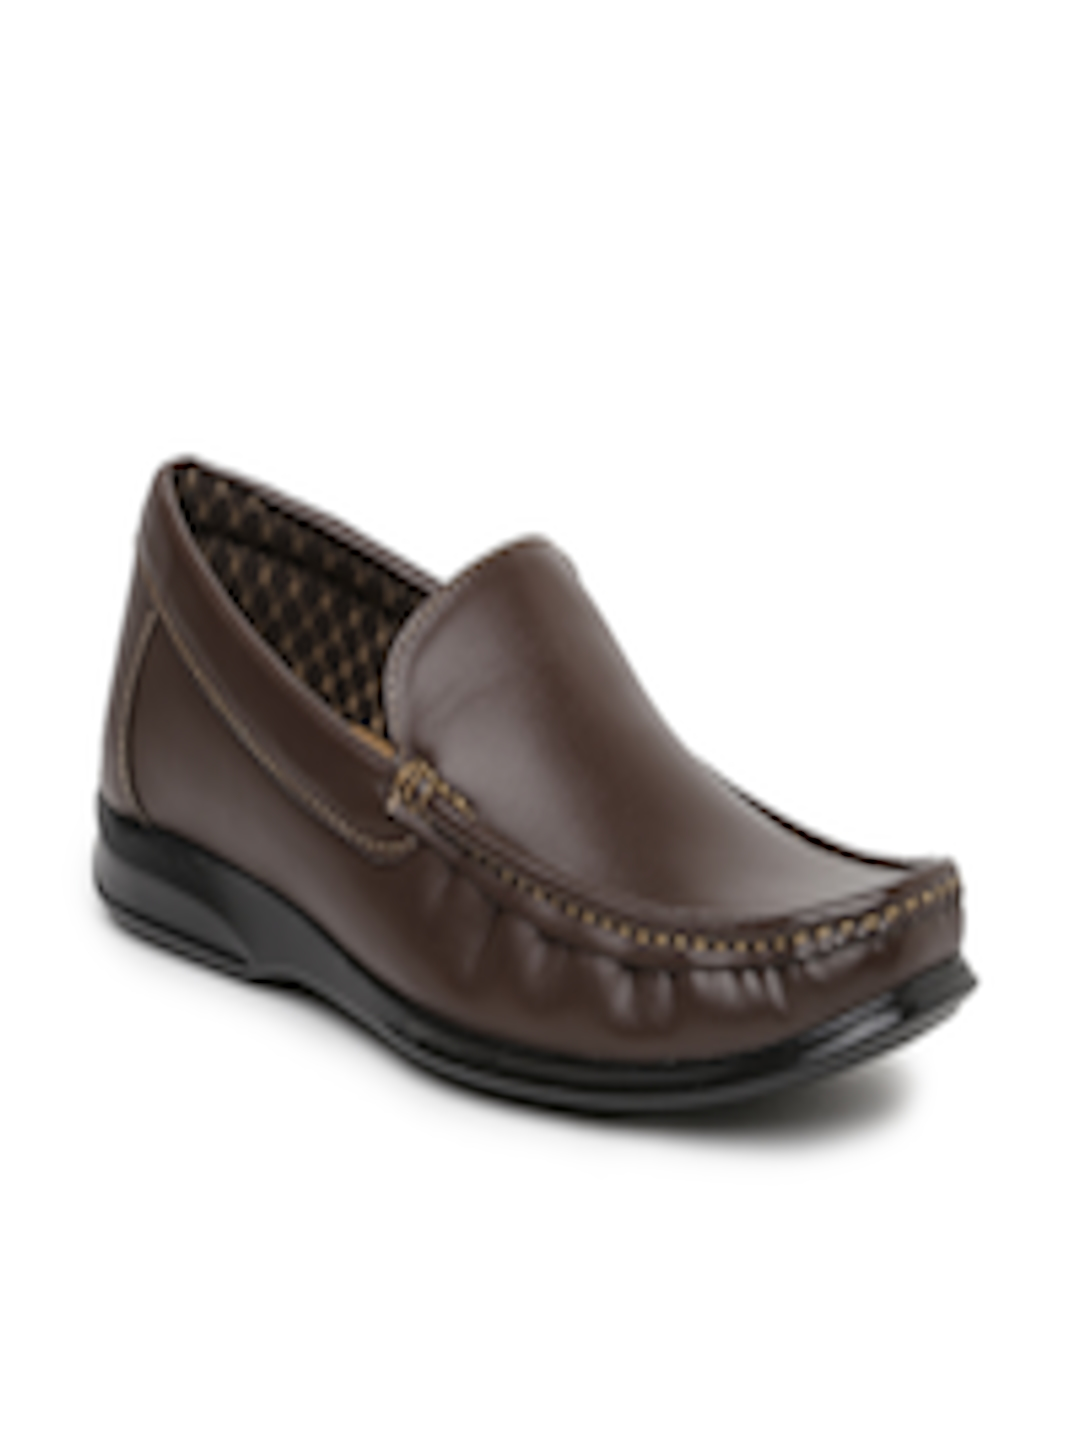 Buy Bata Men Brown Loafers Casual Shoes For Men 1387625